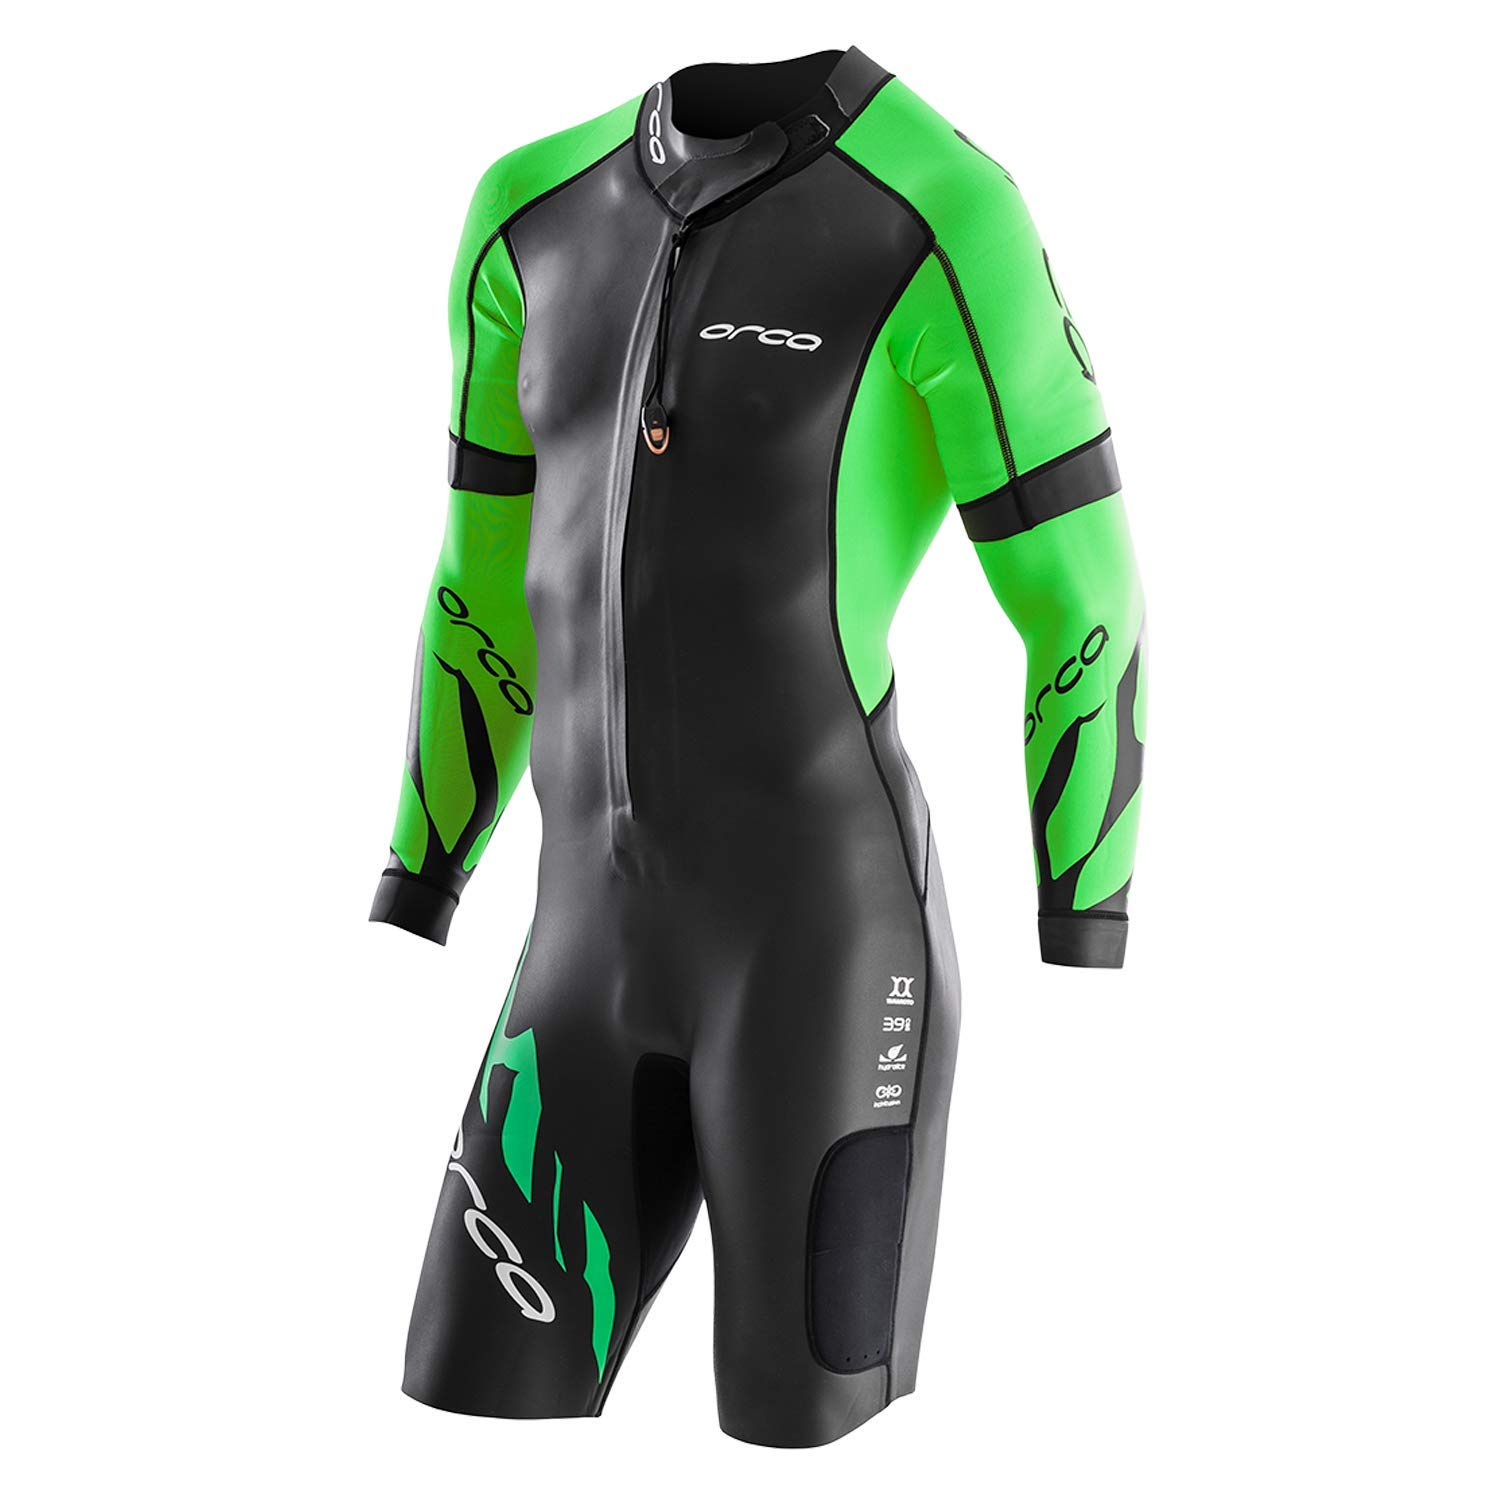 ORCA SwimRun Core Mens One Piece Wetsuit (7) by ORCA (Image #2)